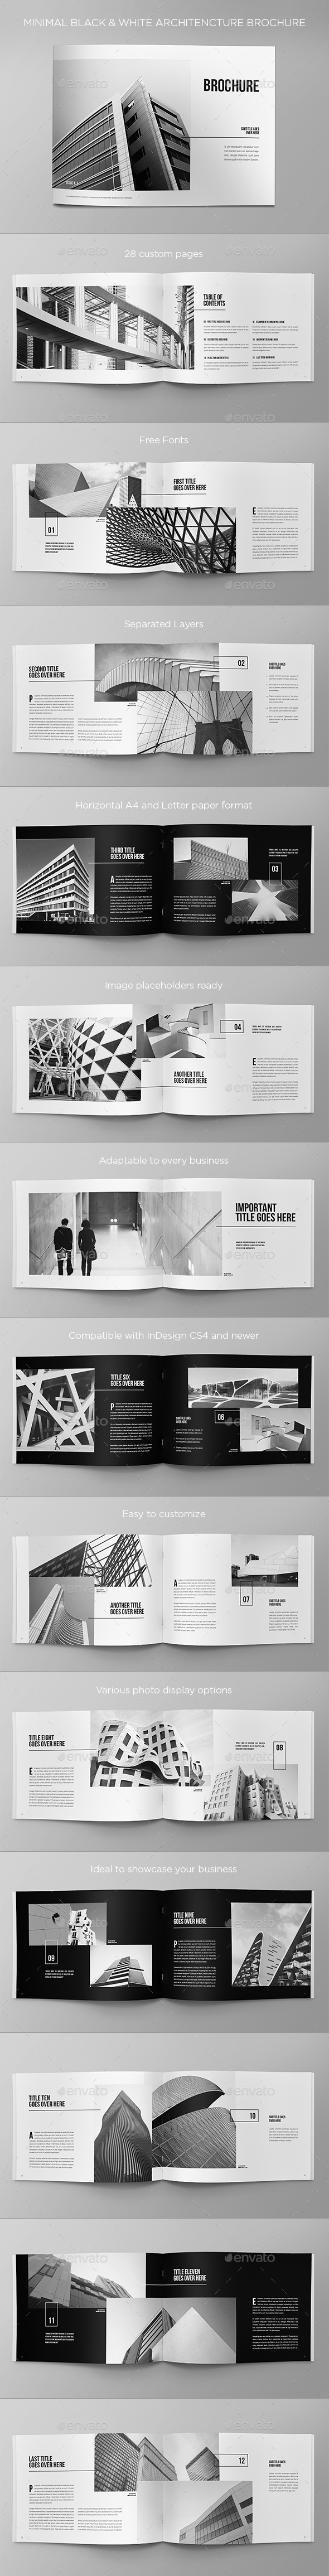 GraphicRiver Minimal Black & White Architecture Brochure 20502840